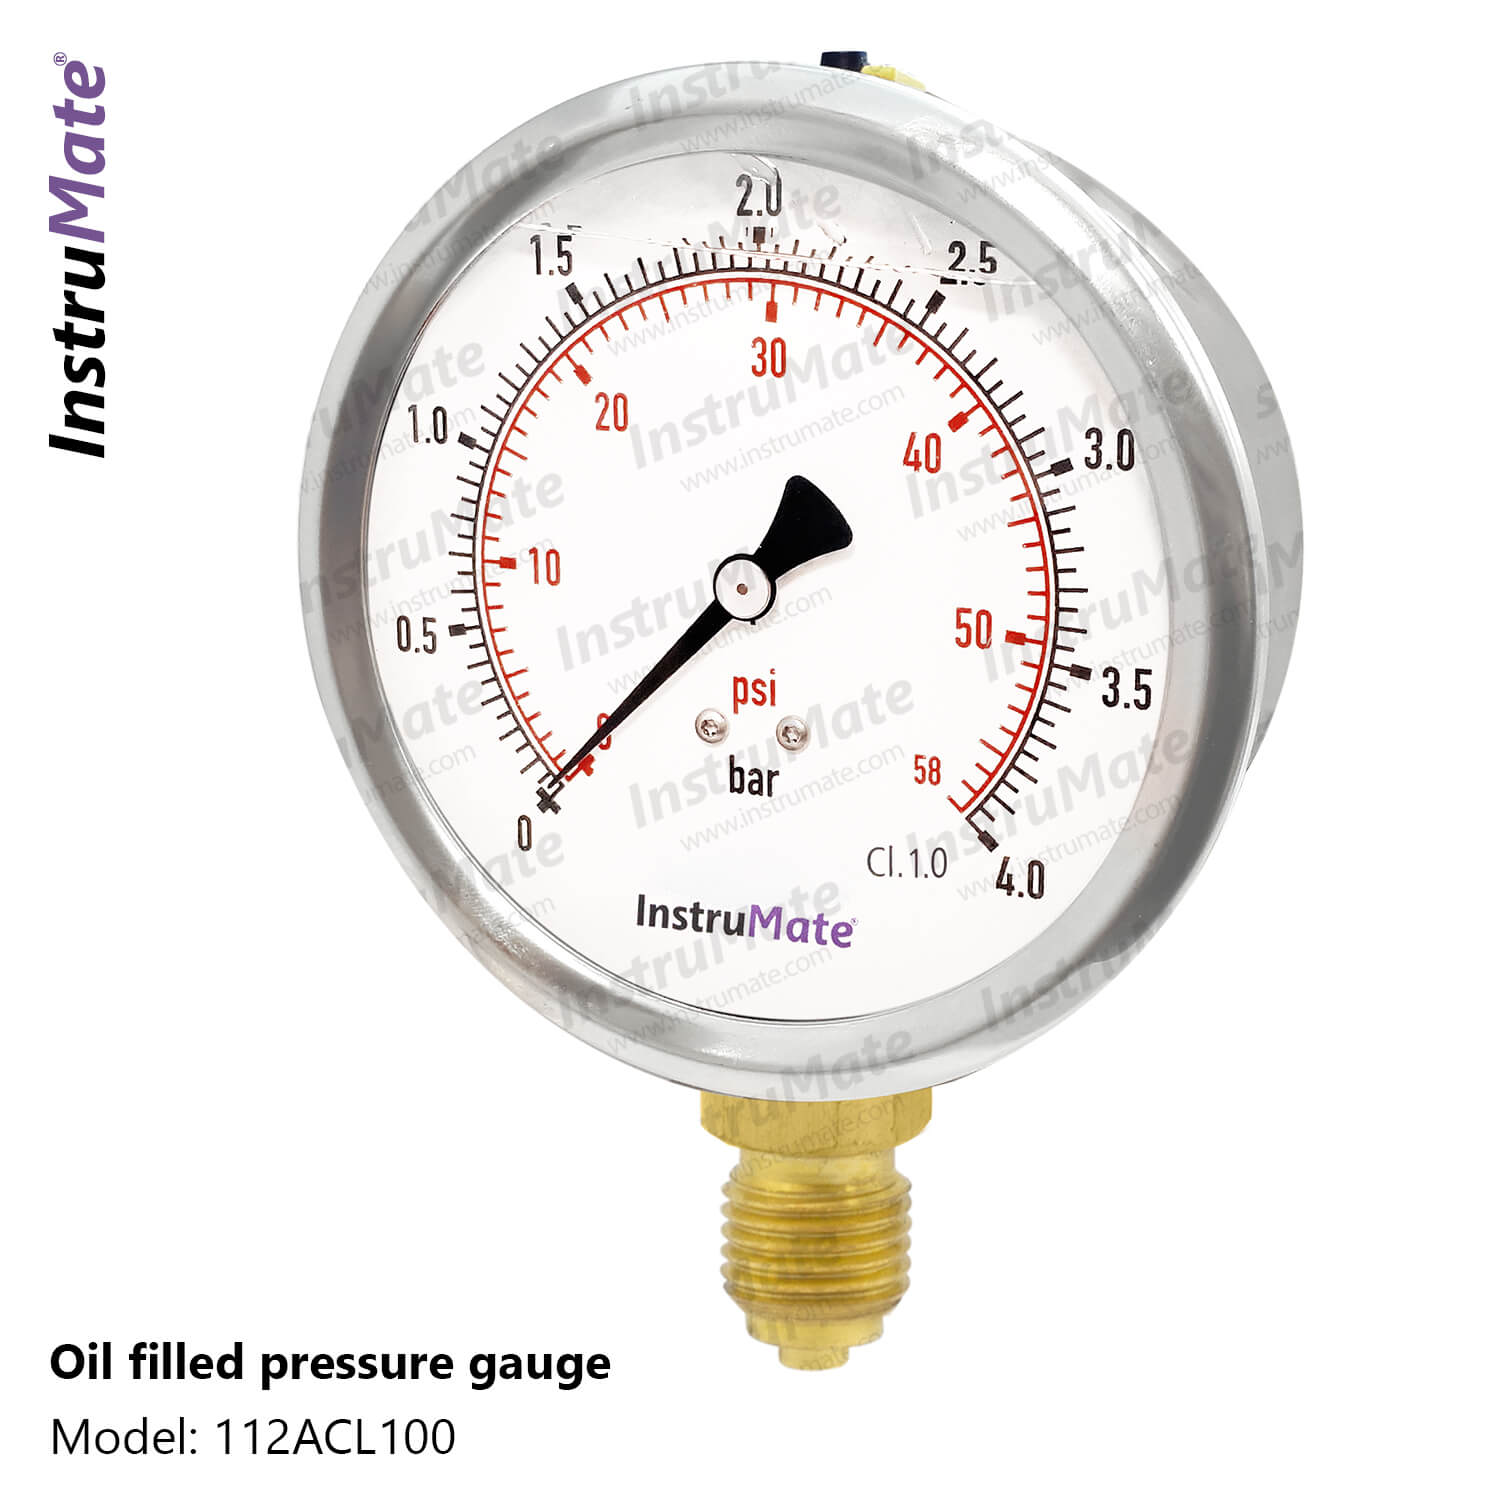 Oil Filled Pressure Gauge - 112AC - InstruMate